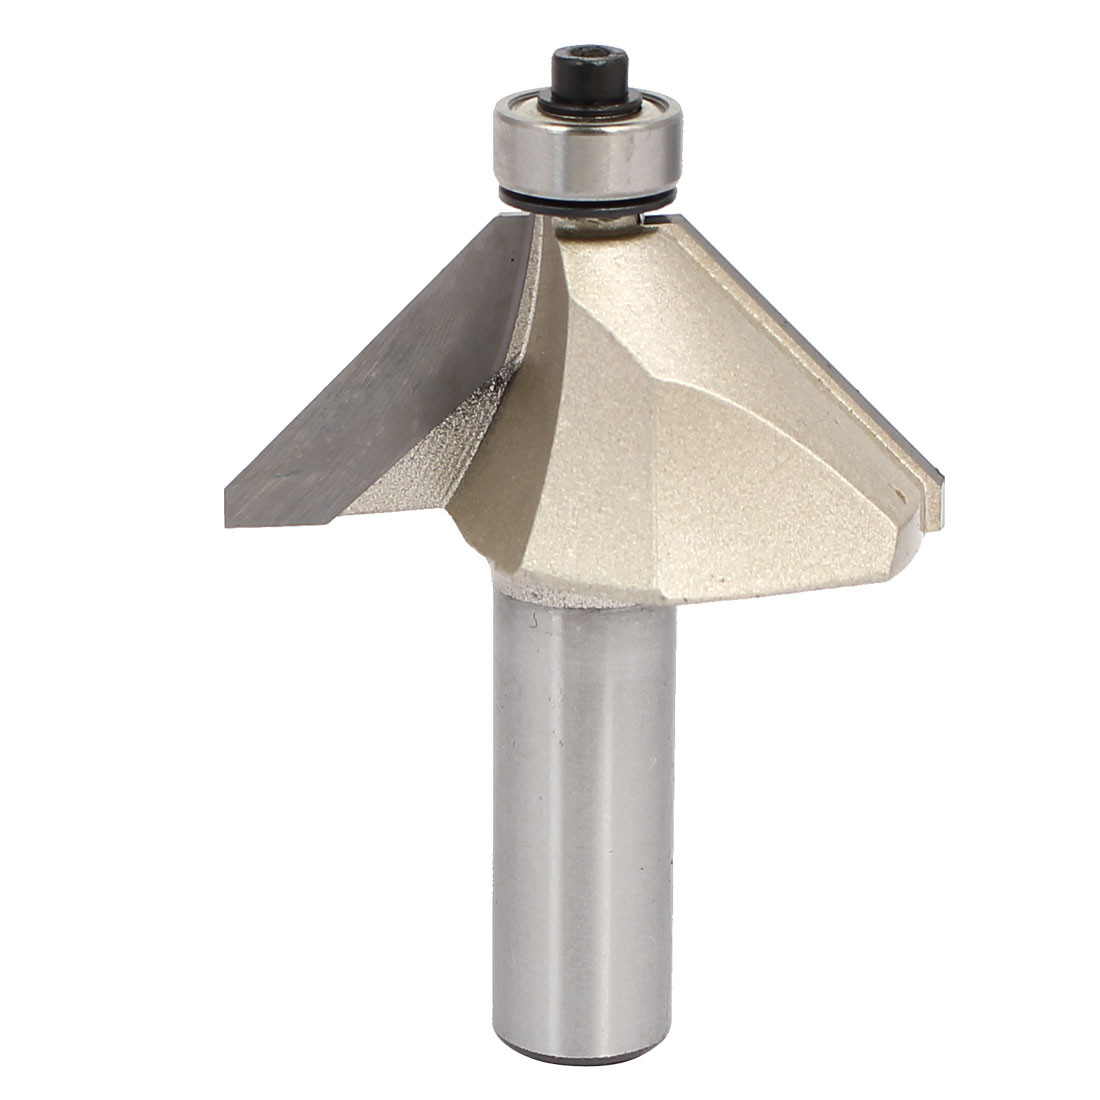 1/2-inch Shank 1-inch Cutting Length Ball Bearing 45 Degree Chamfer Router Bit